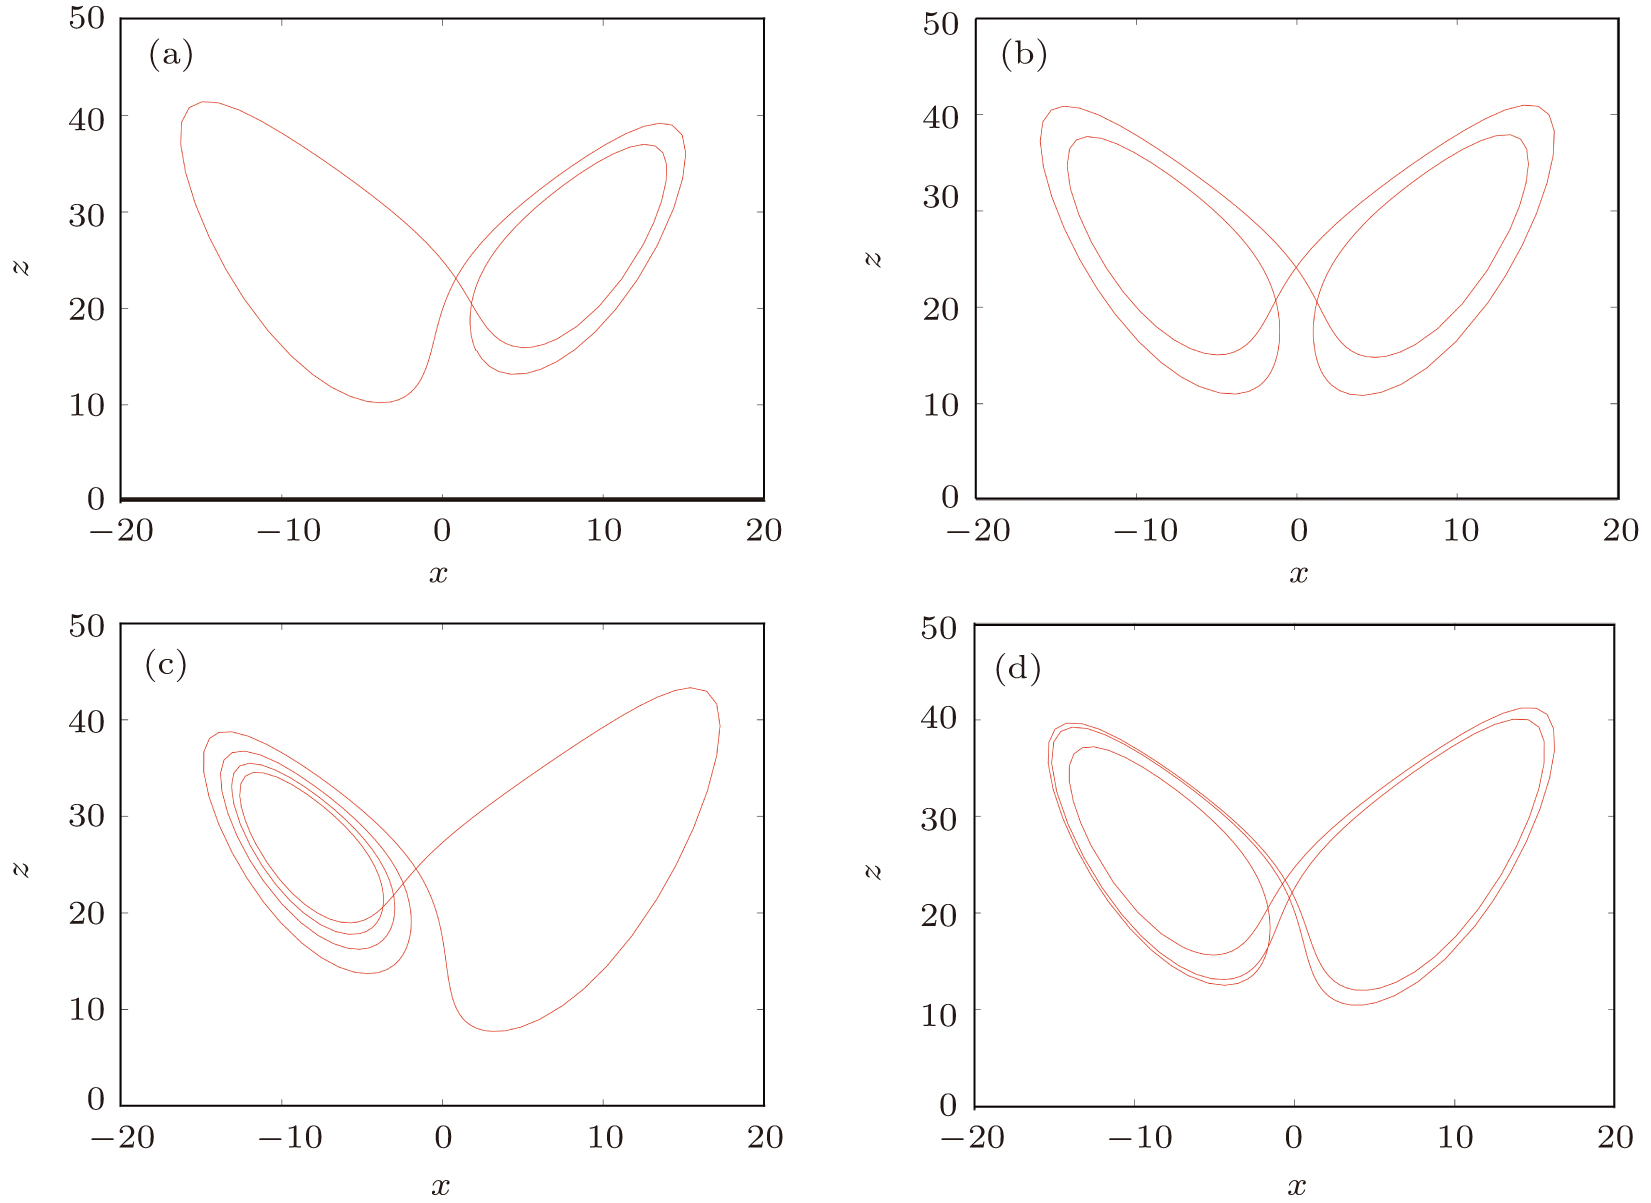 Topological classification of periodic orbits in Lorenz system